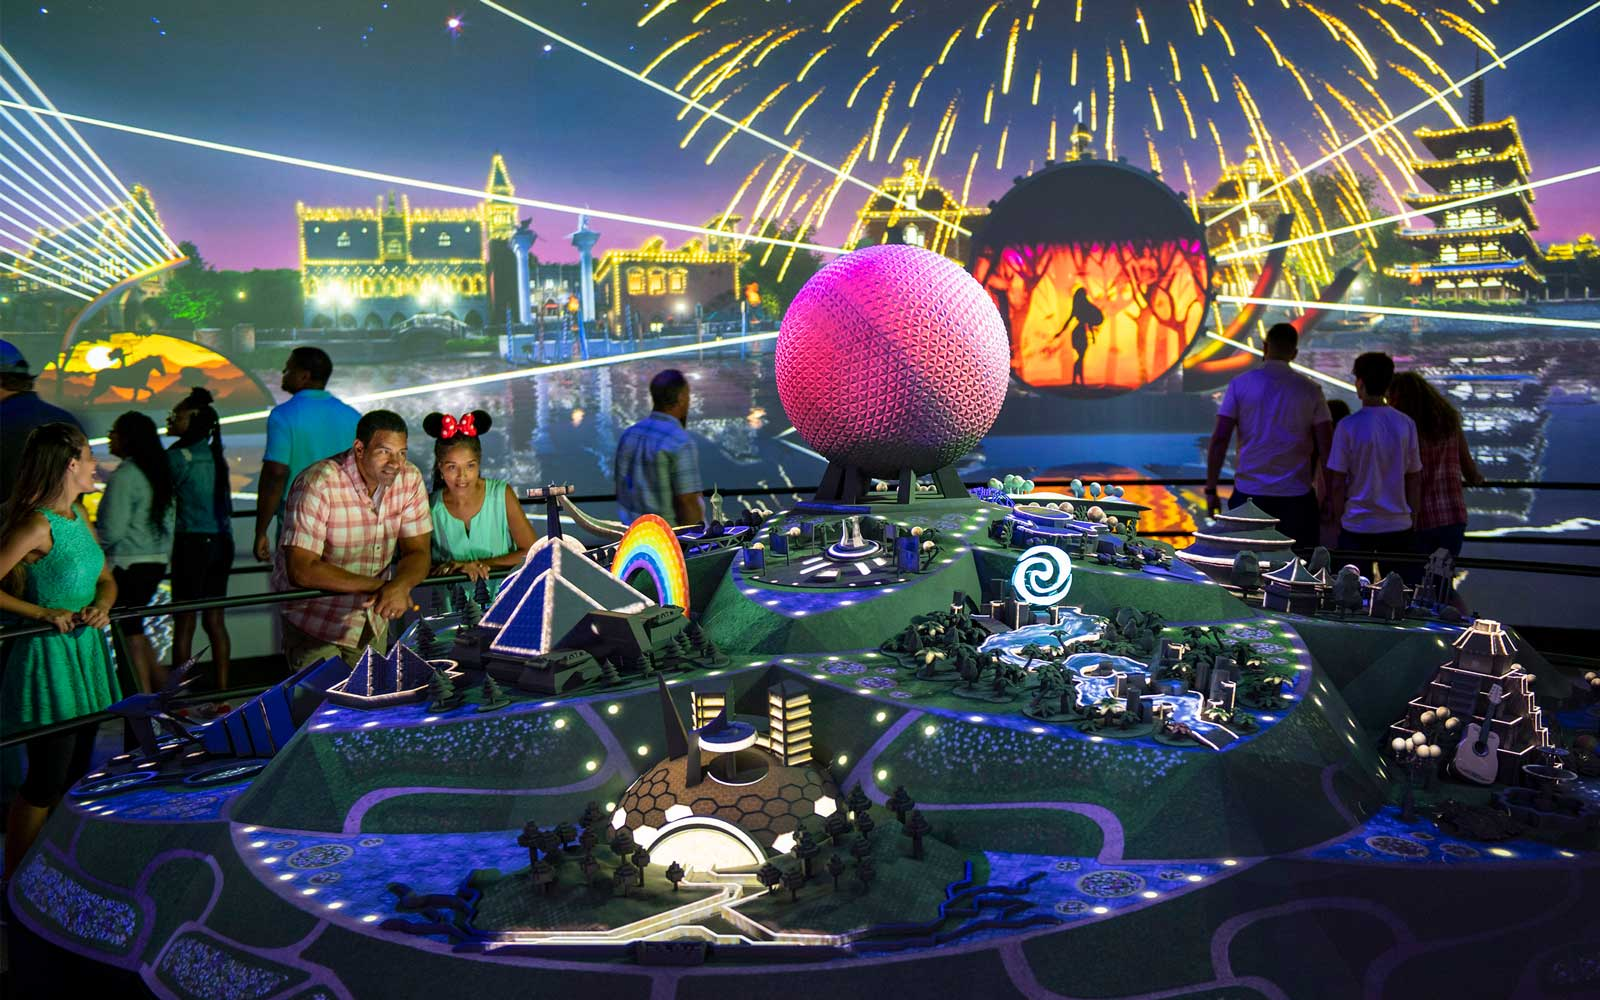 Exhibit of transformation coming to Epcot at Walt Disney World